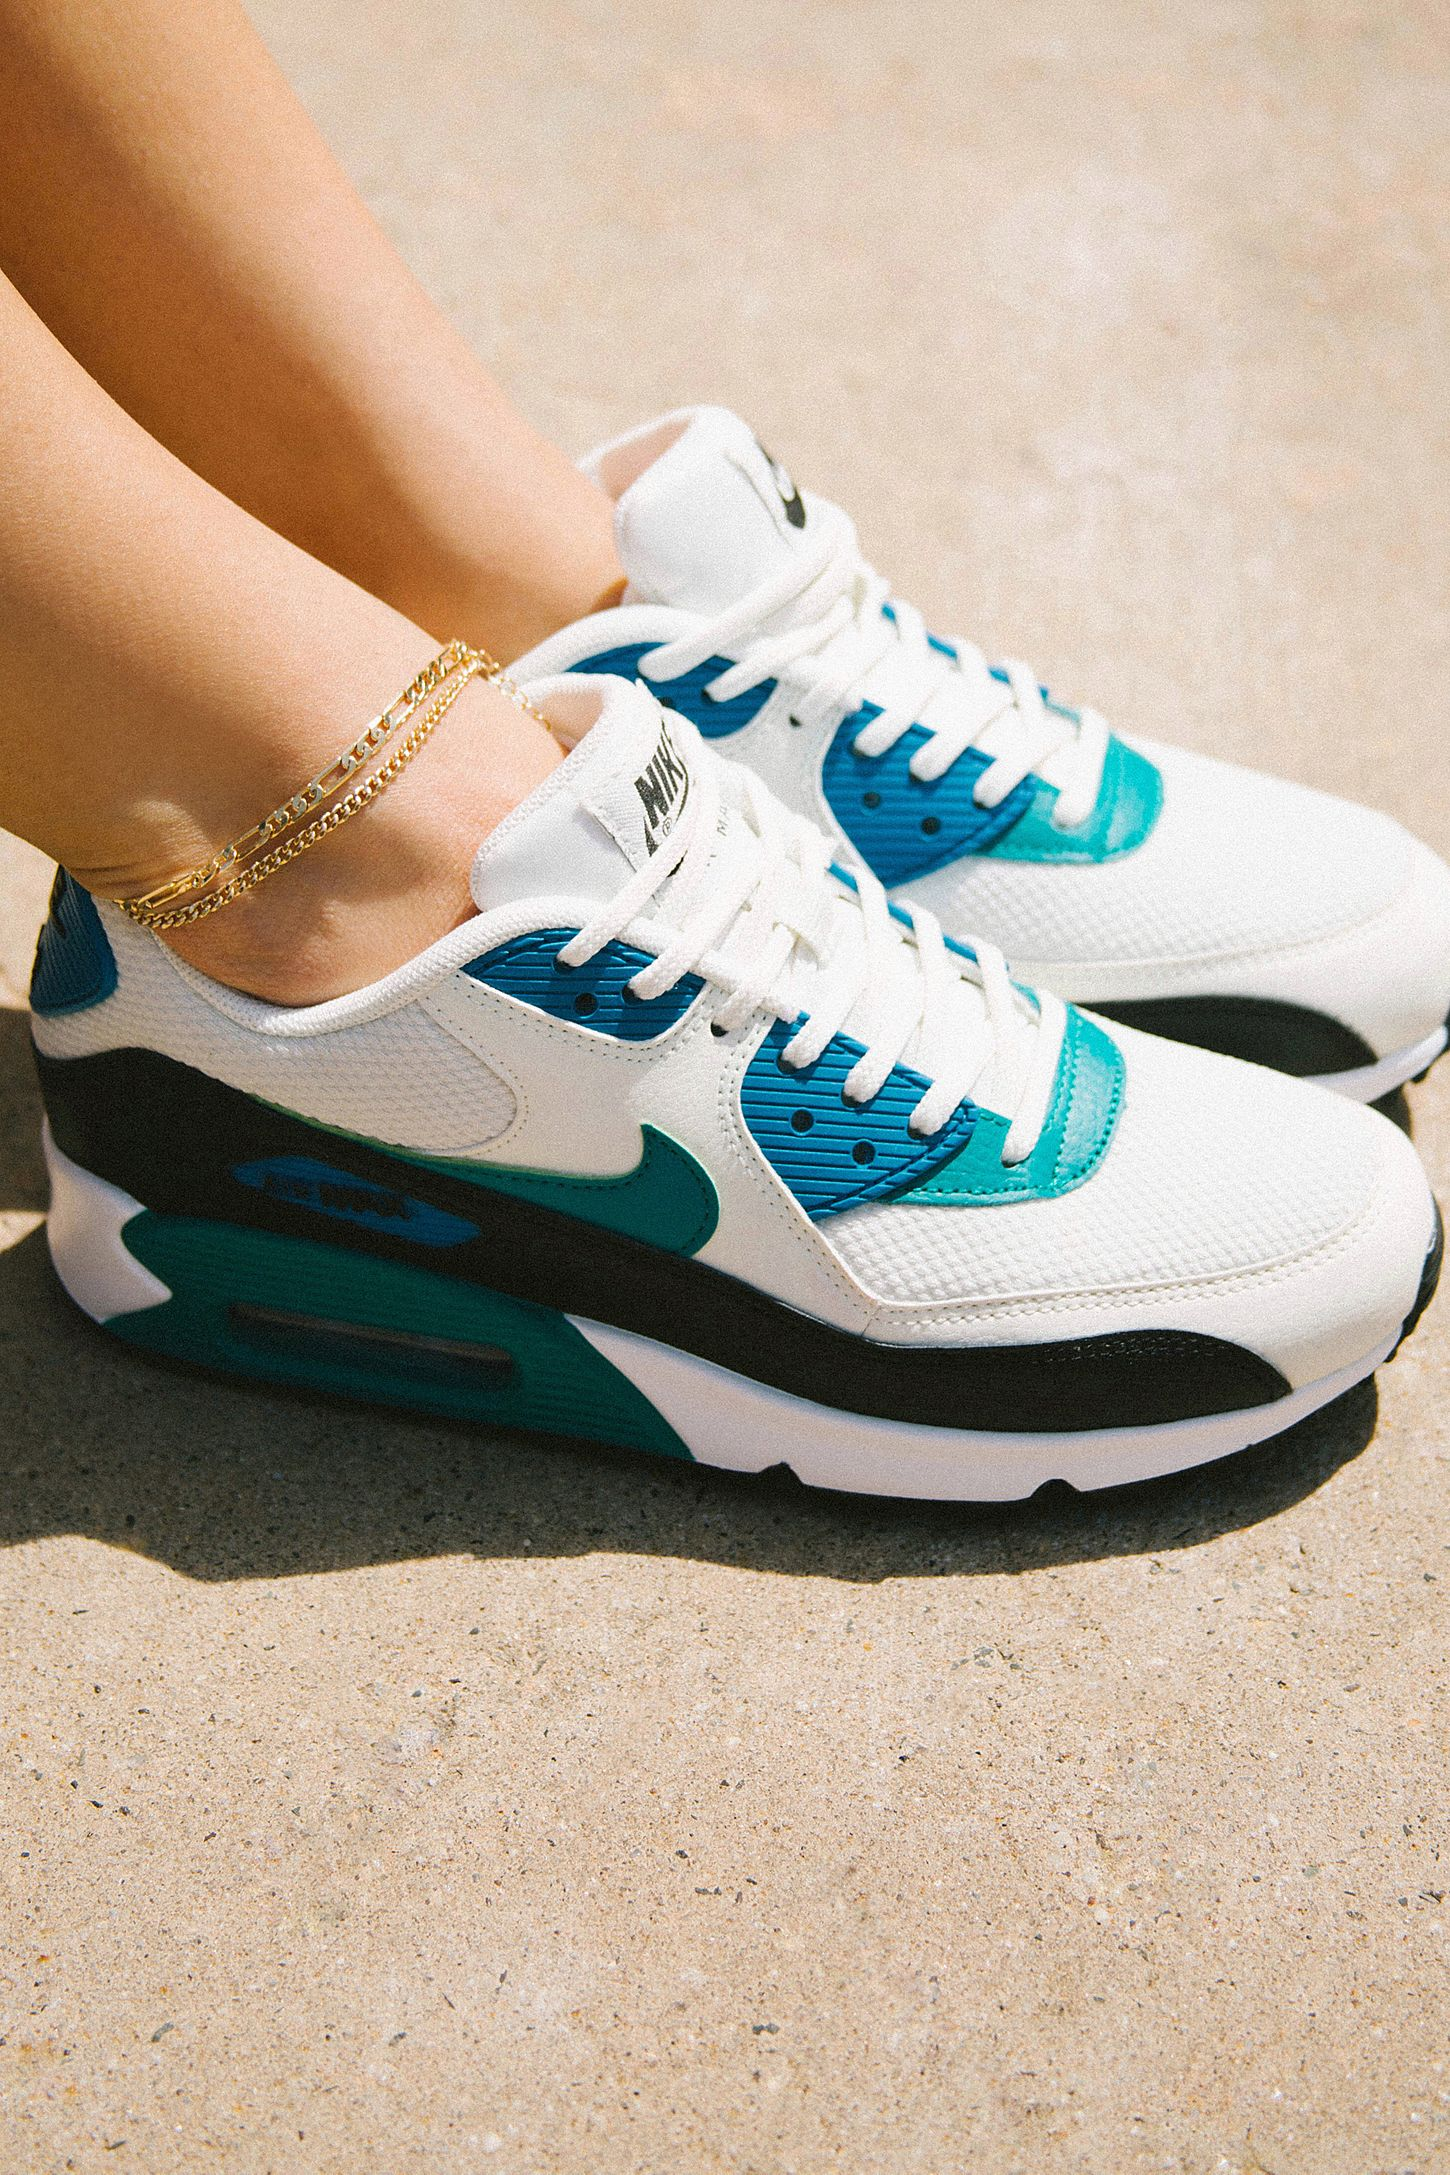 buy online 55ea6 bd35e Nike Air Max 90 Colorblock Sneaker   Urban Outfitters